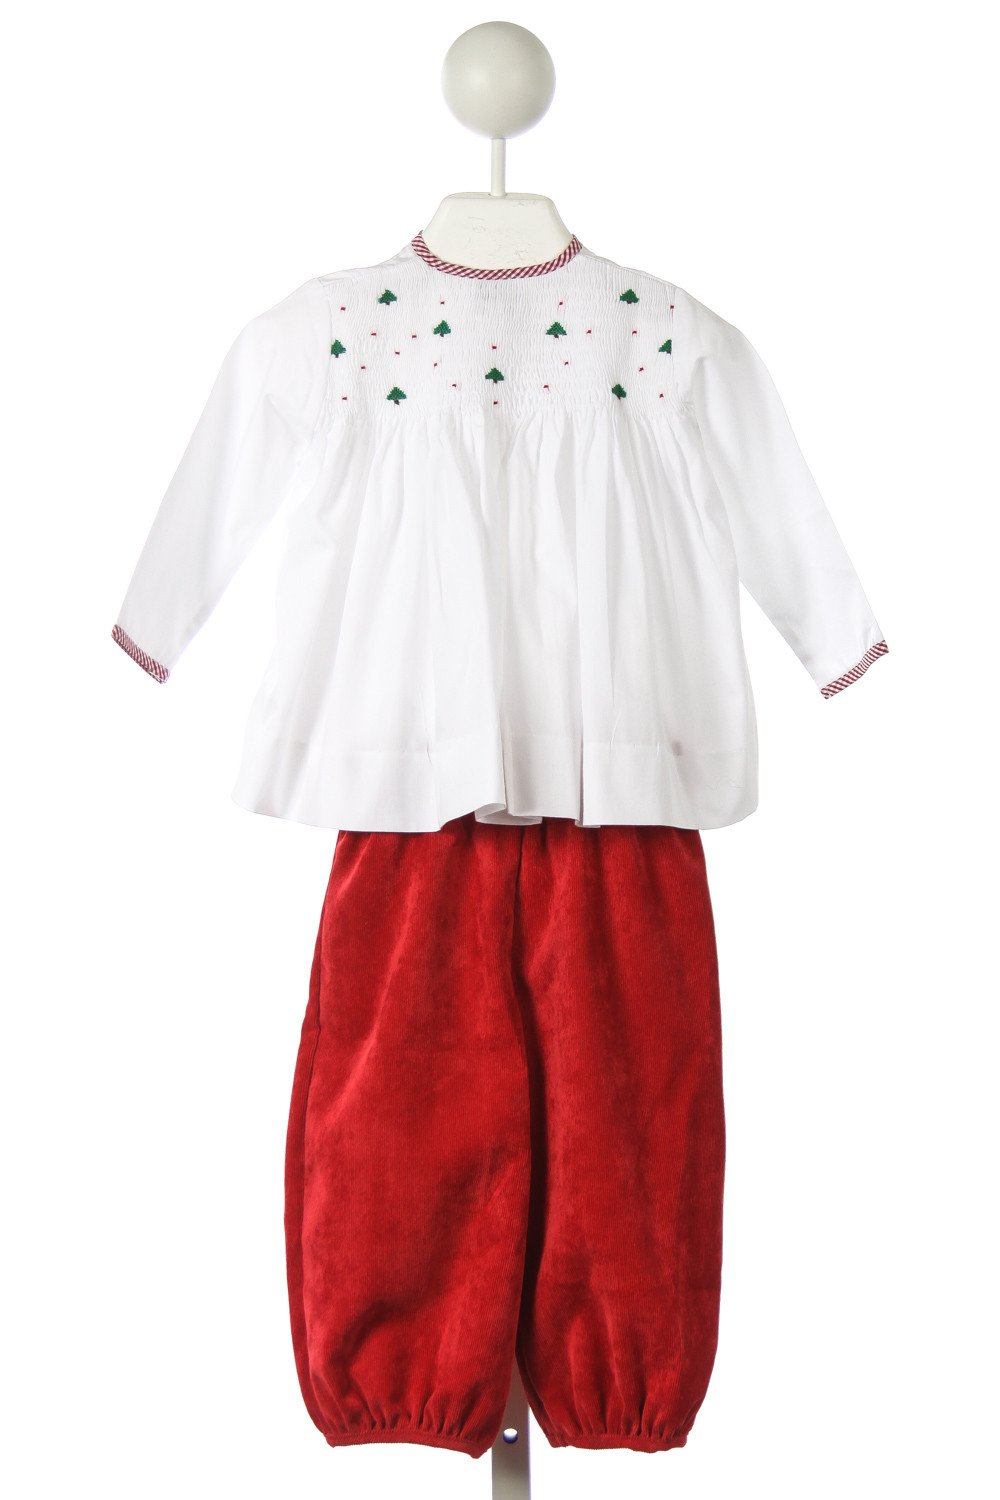 ALICE KATHLEEN SMOCKED CHRISTMAS TREE APRON SET